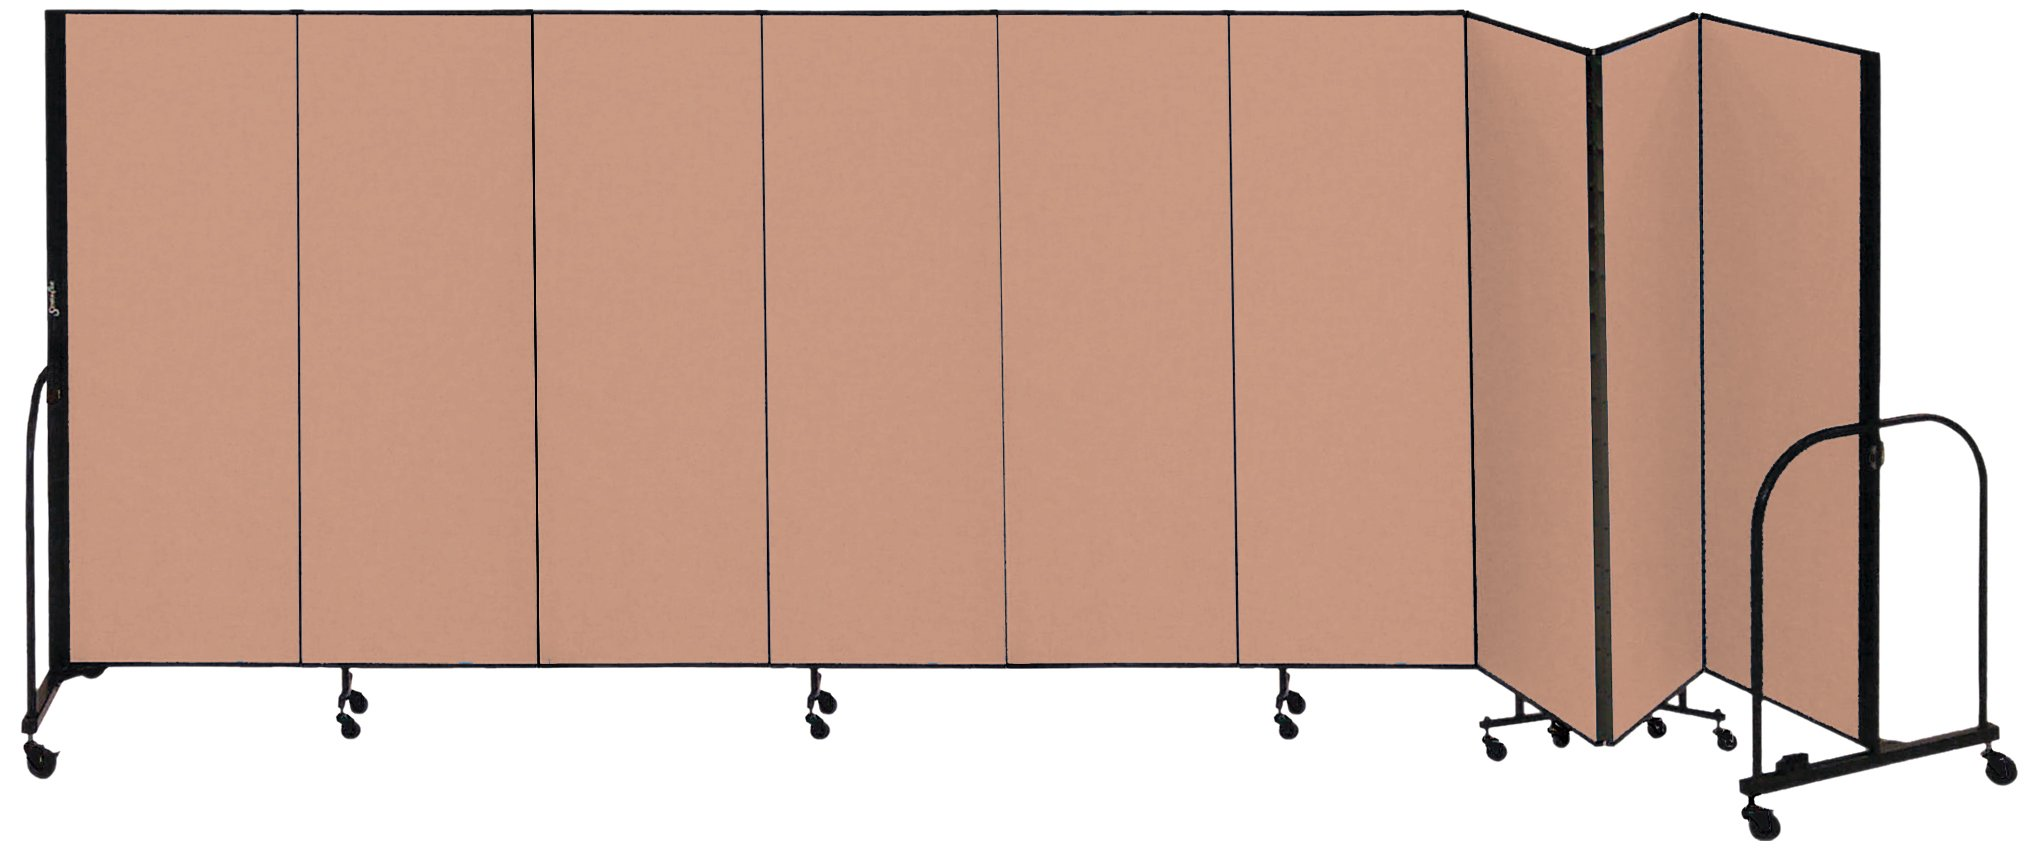 Screenflex Commercial Portable Room Divider (CFSL609-DO) 6 Feet High by 16 Feet 9 Inches Long, Designer Walnut Fabric